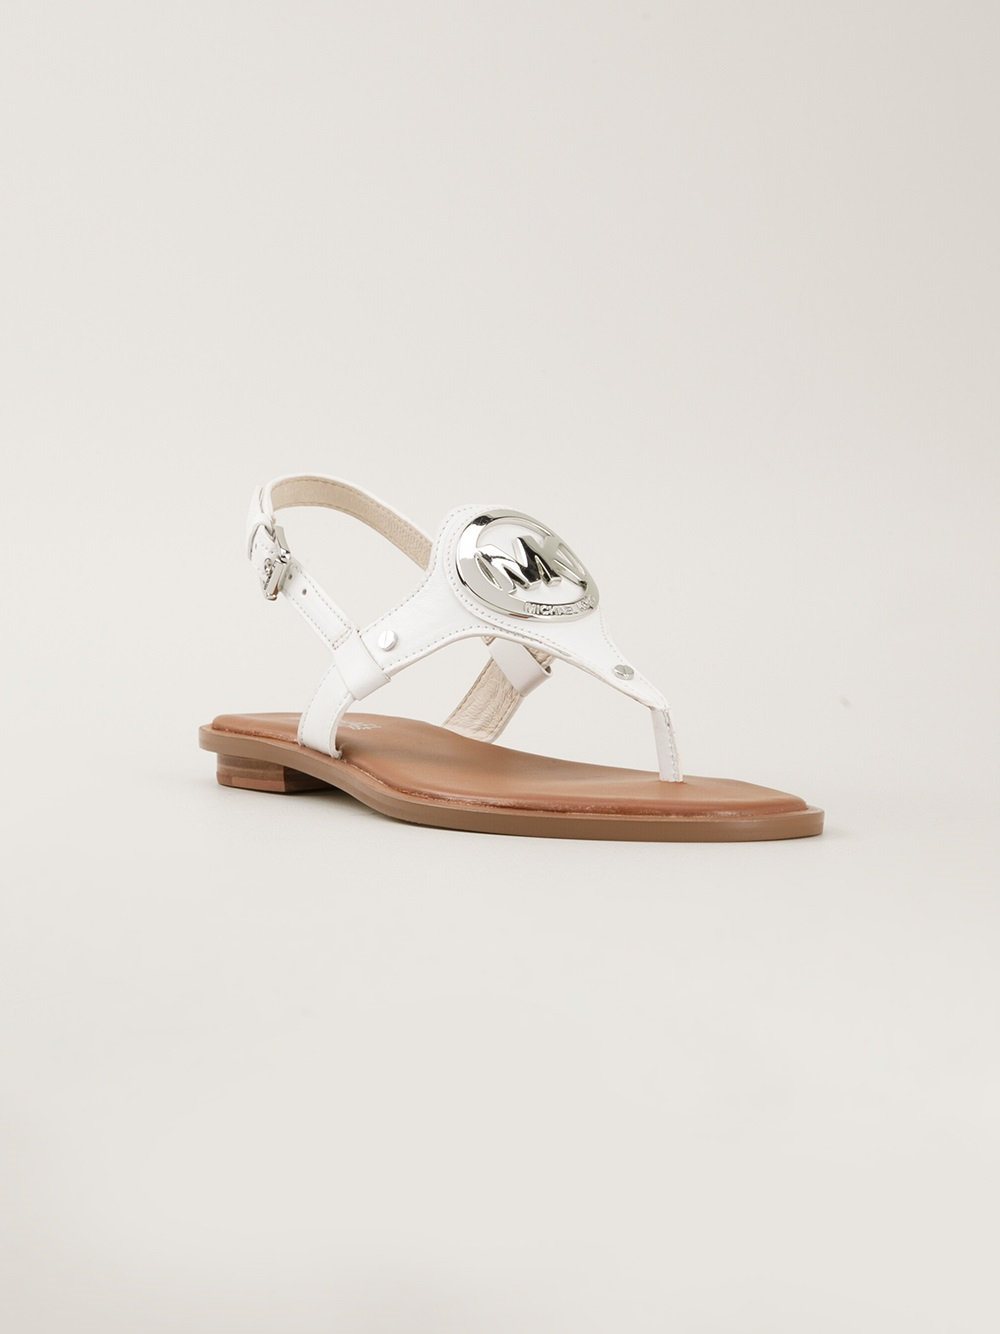 Lyst Michael Michael Kors Aubrey Flat Sandals In White